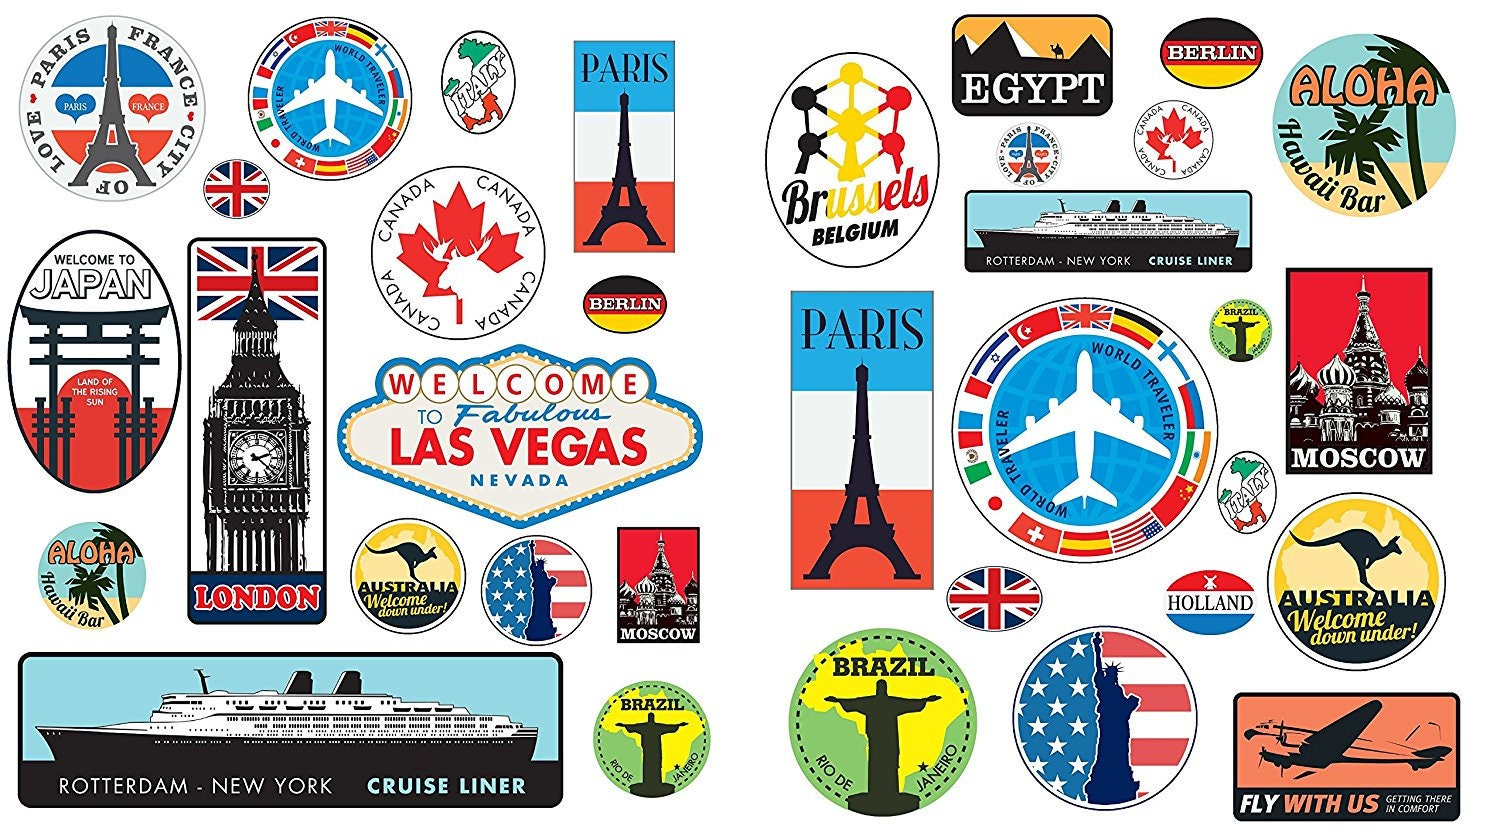 Peel and stick 36 Retro Vintage old fashioned style luggage suitcase travel stickers stick on